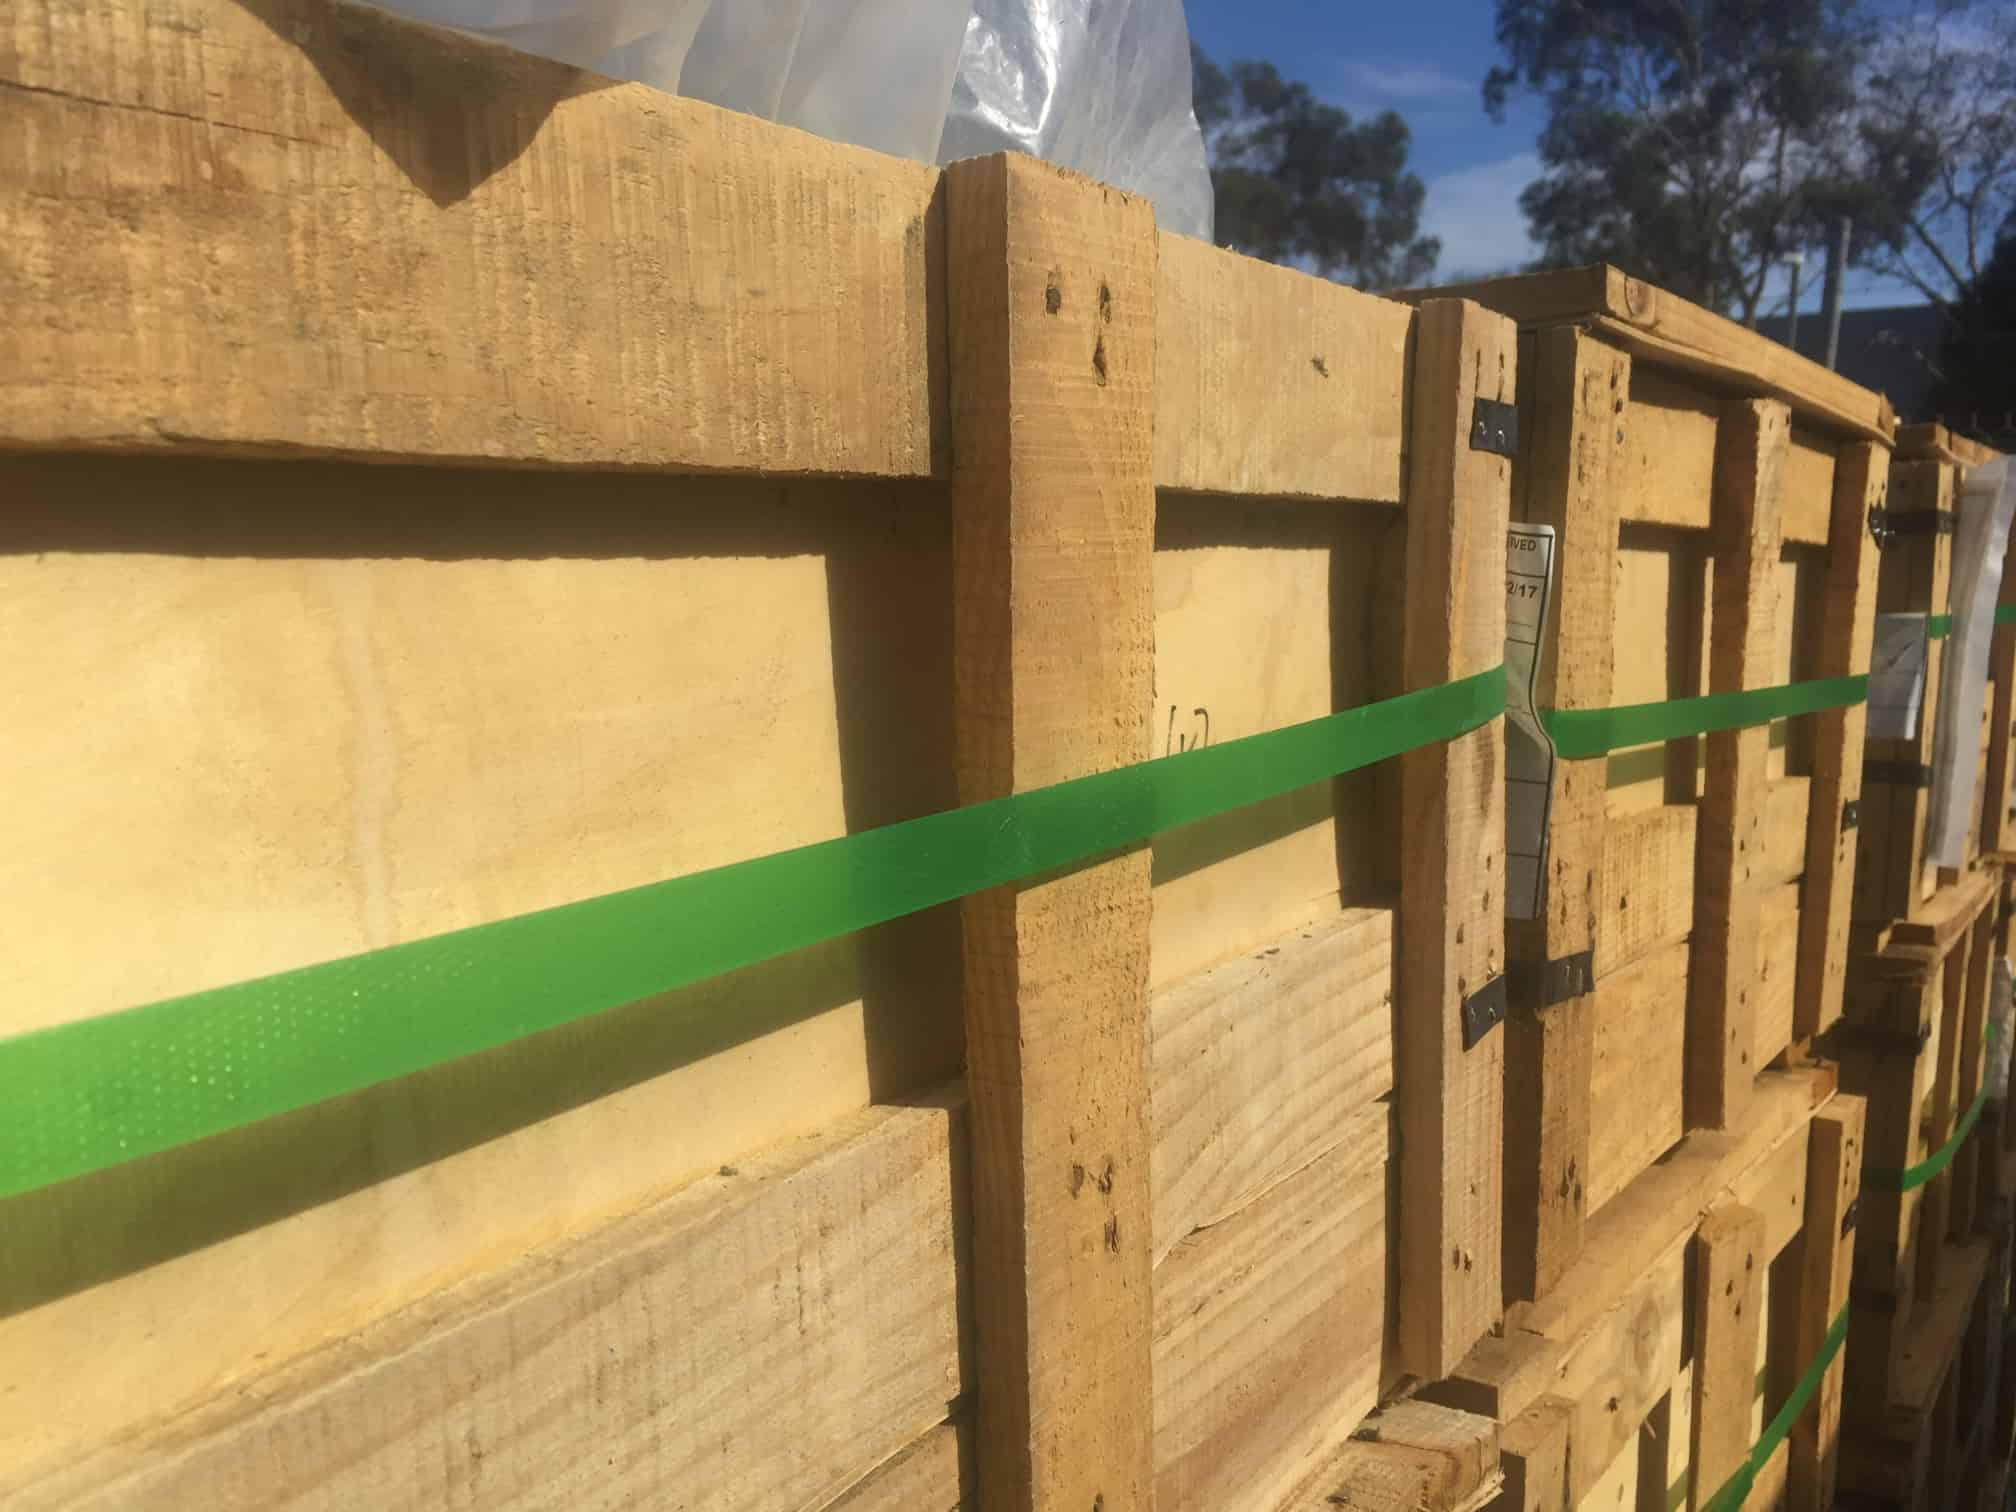 wooden boxes with green ties